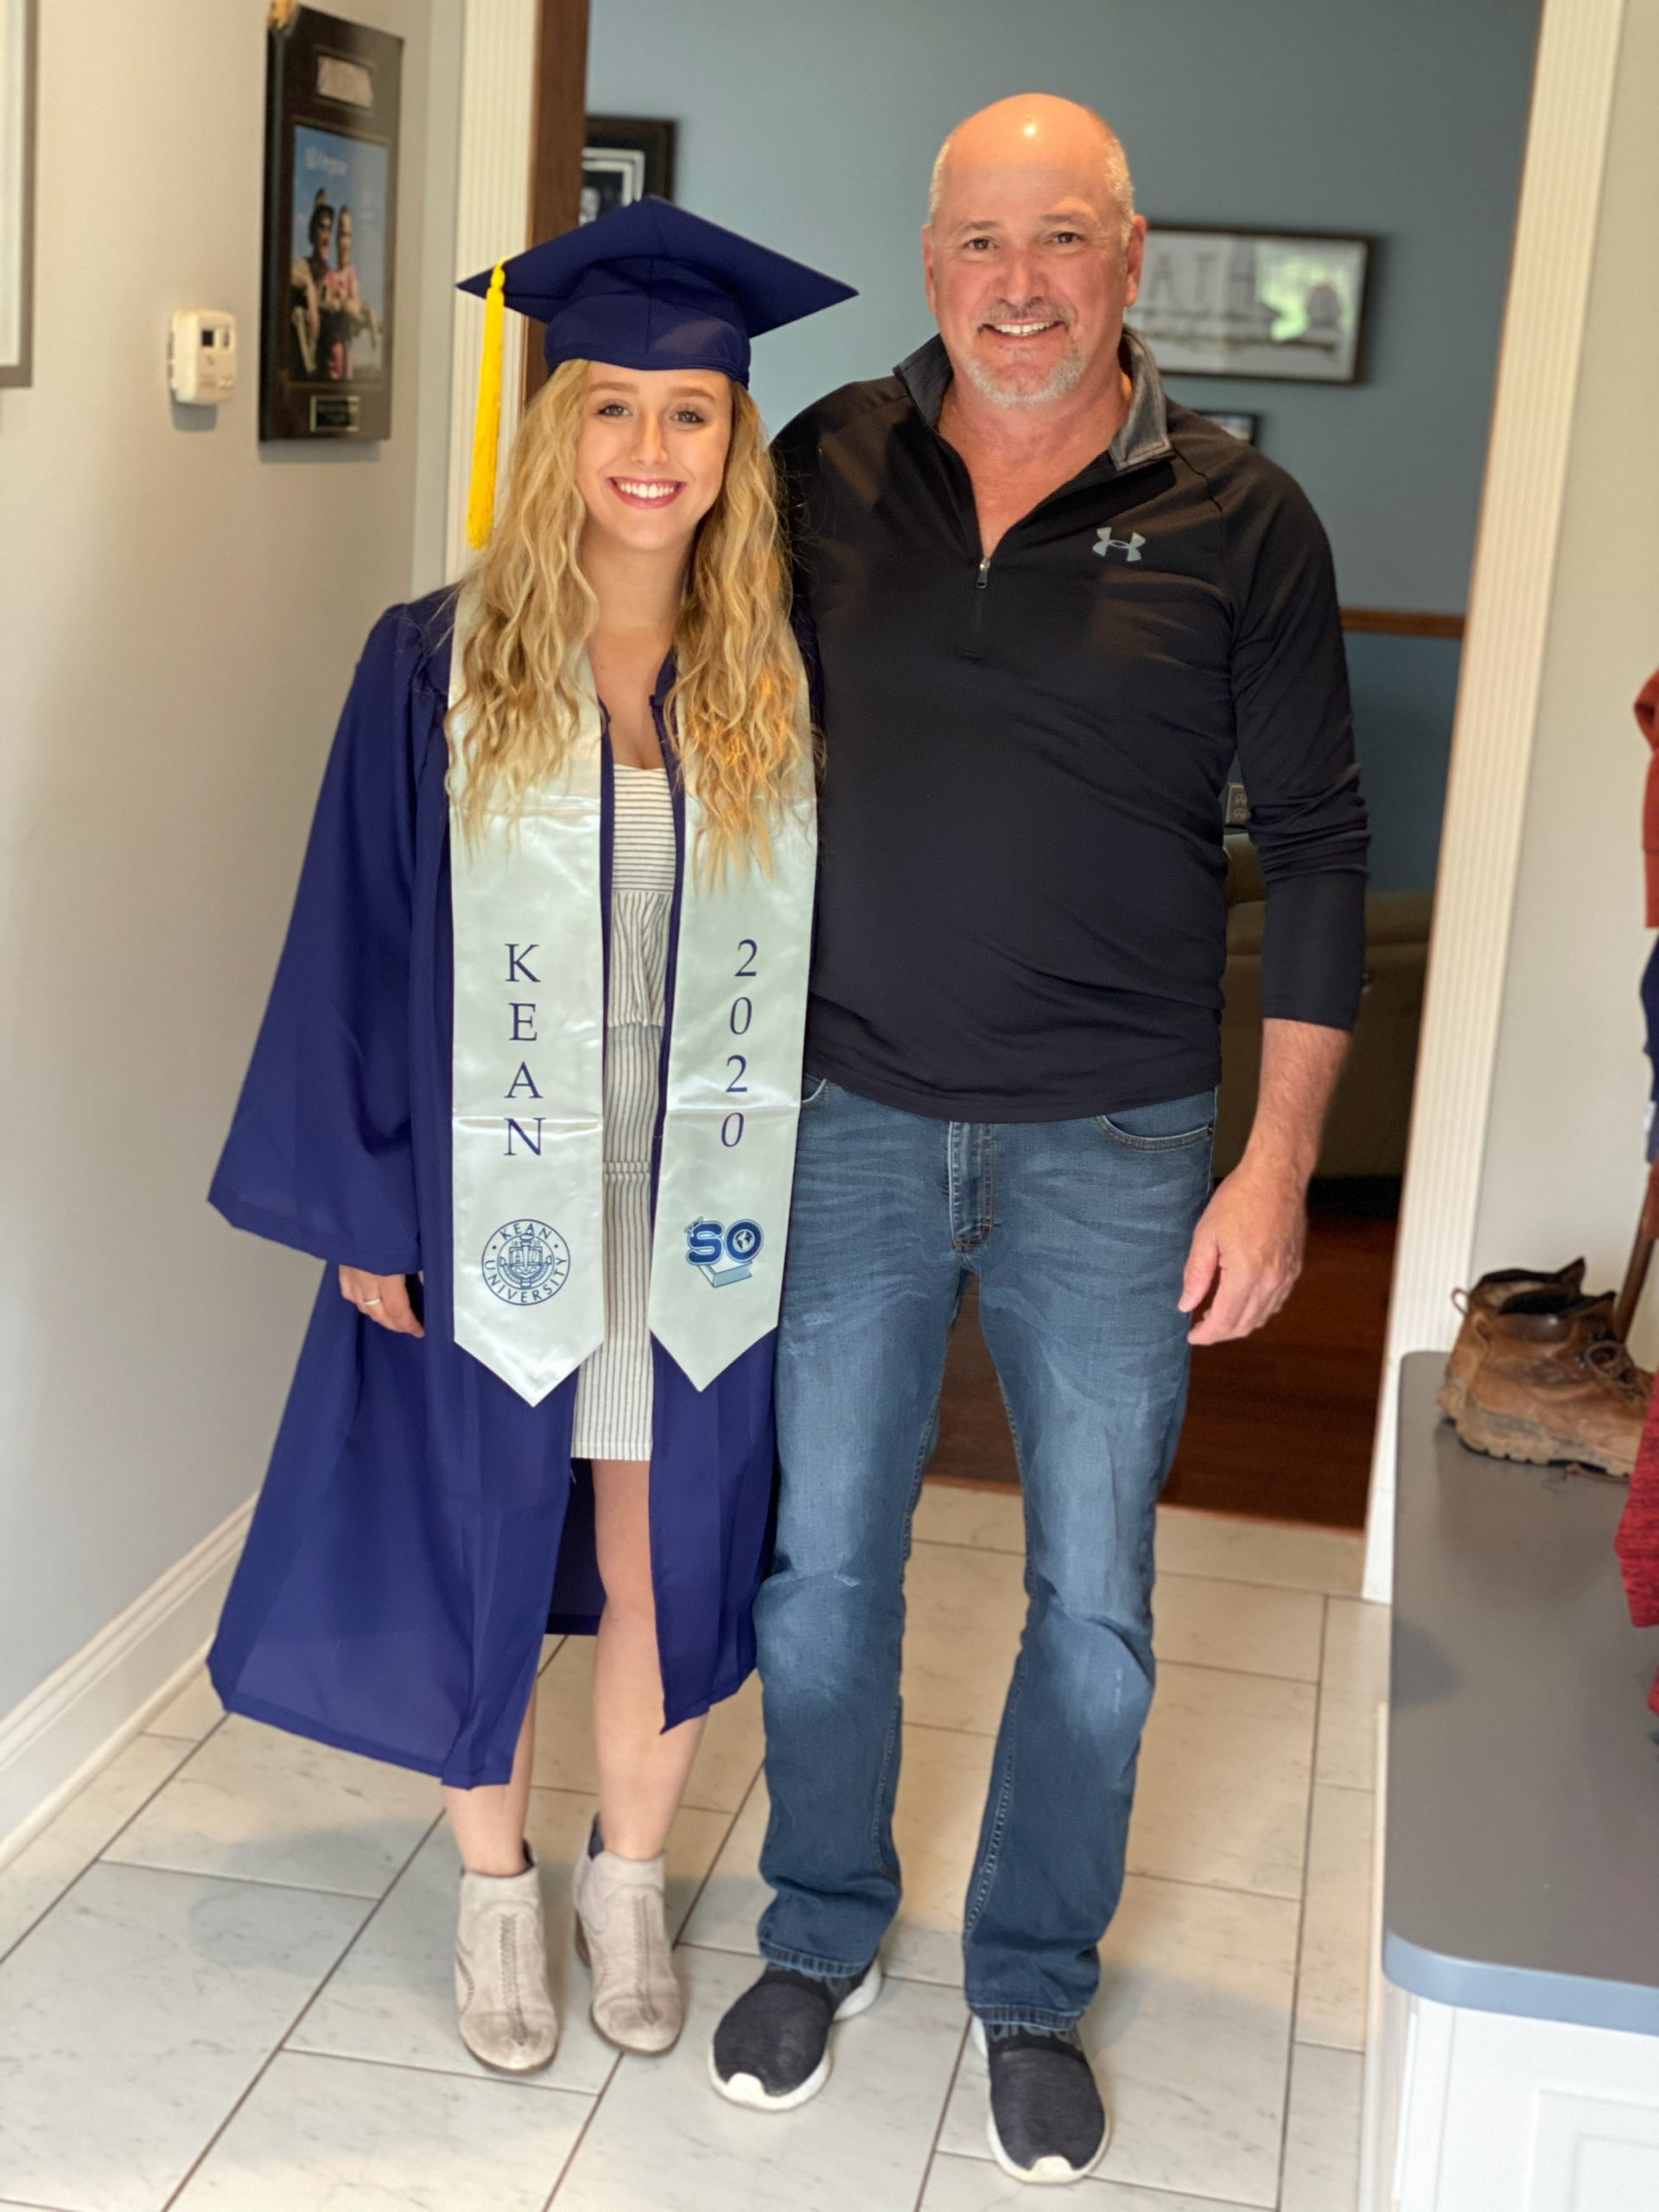 Stay at home Graduation for Stacie Faille